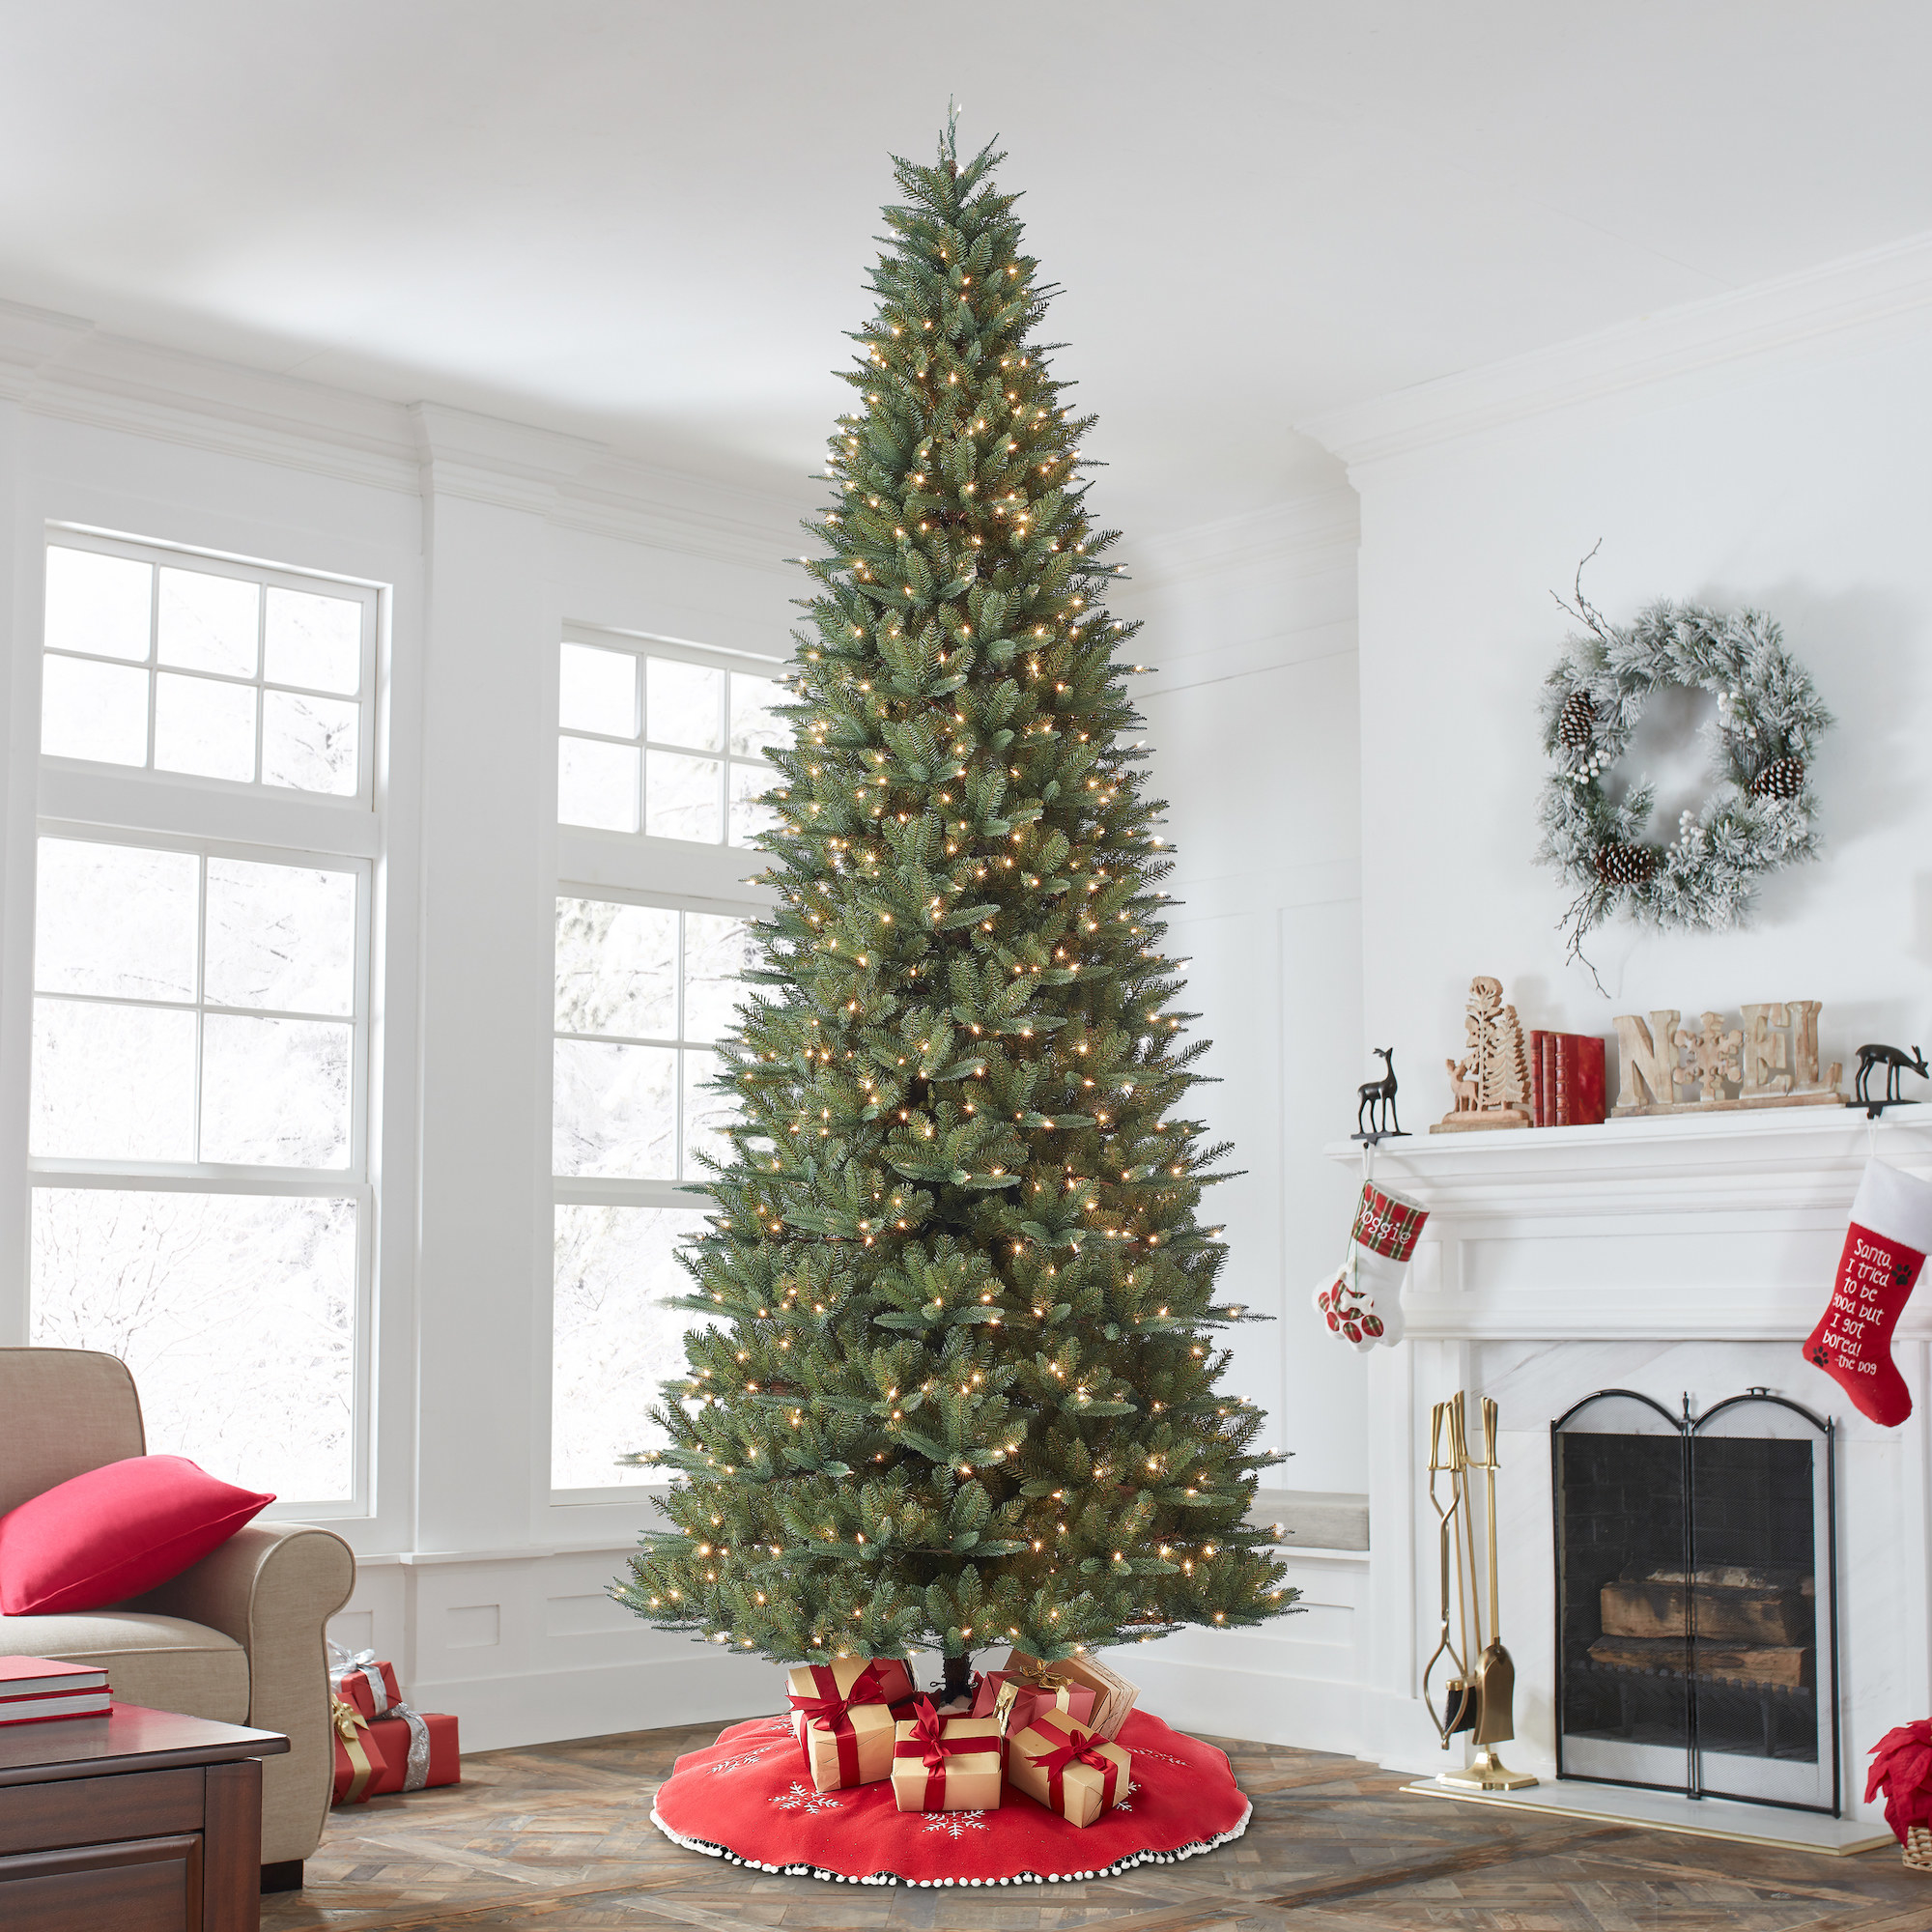 pre-lit artificial christmas tree with presents underneath it